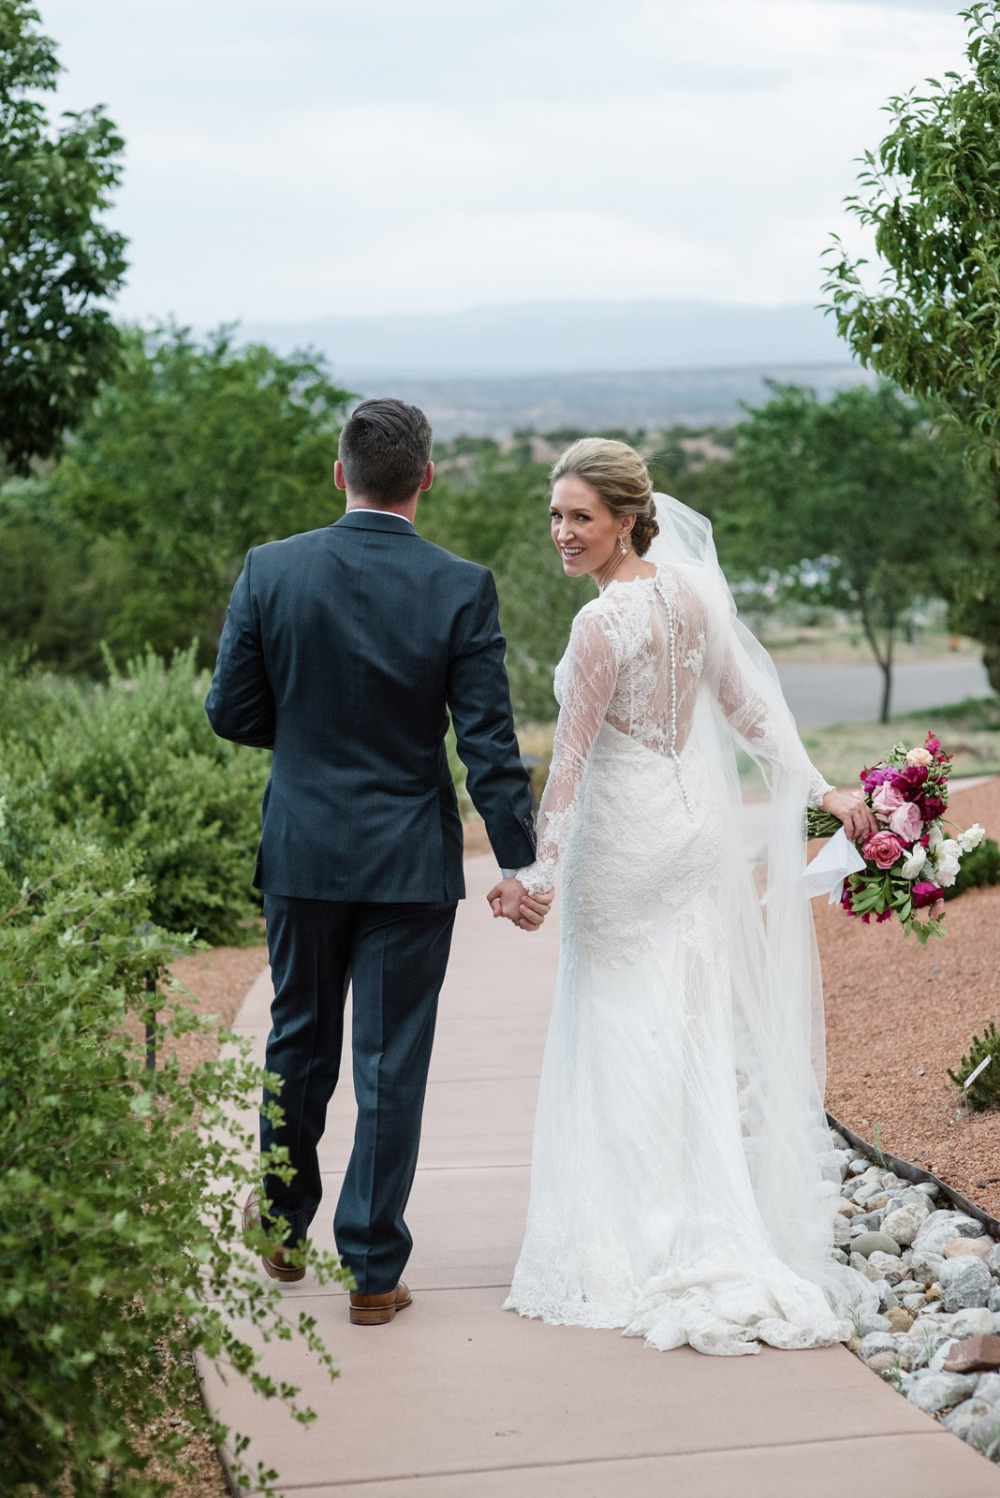 Romantic desert themed wedding